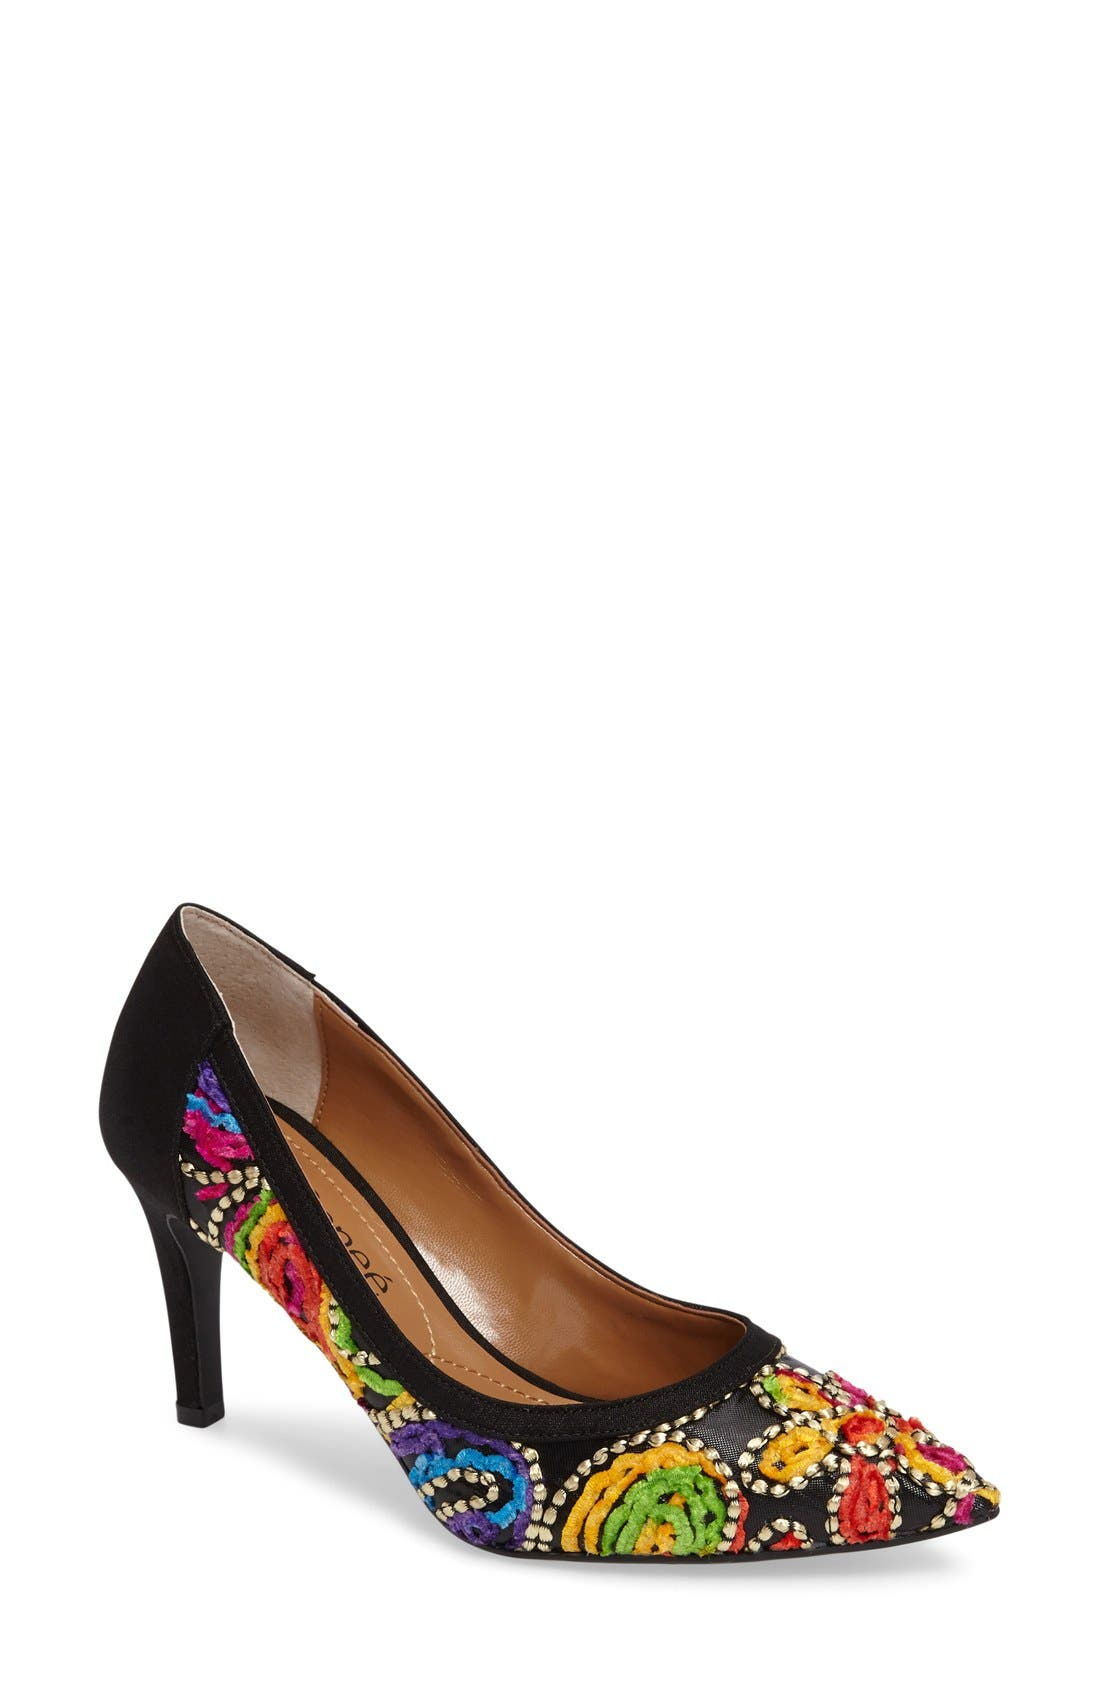 Alternate Image 1 Selected - J. Reneé Camall Embroidered Pointy Toe Pump (Women)